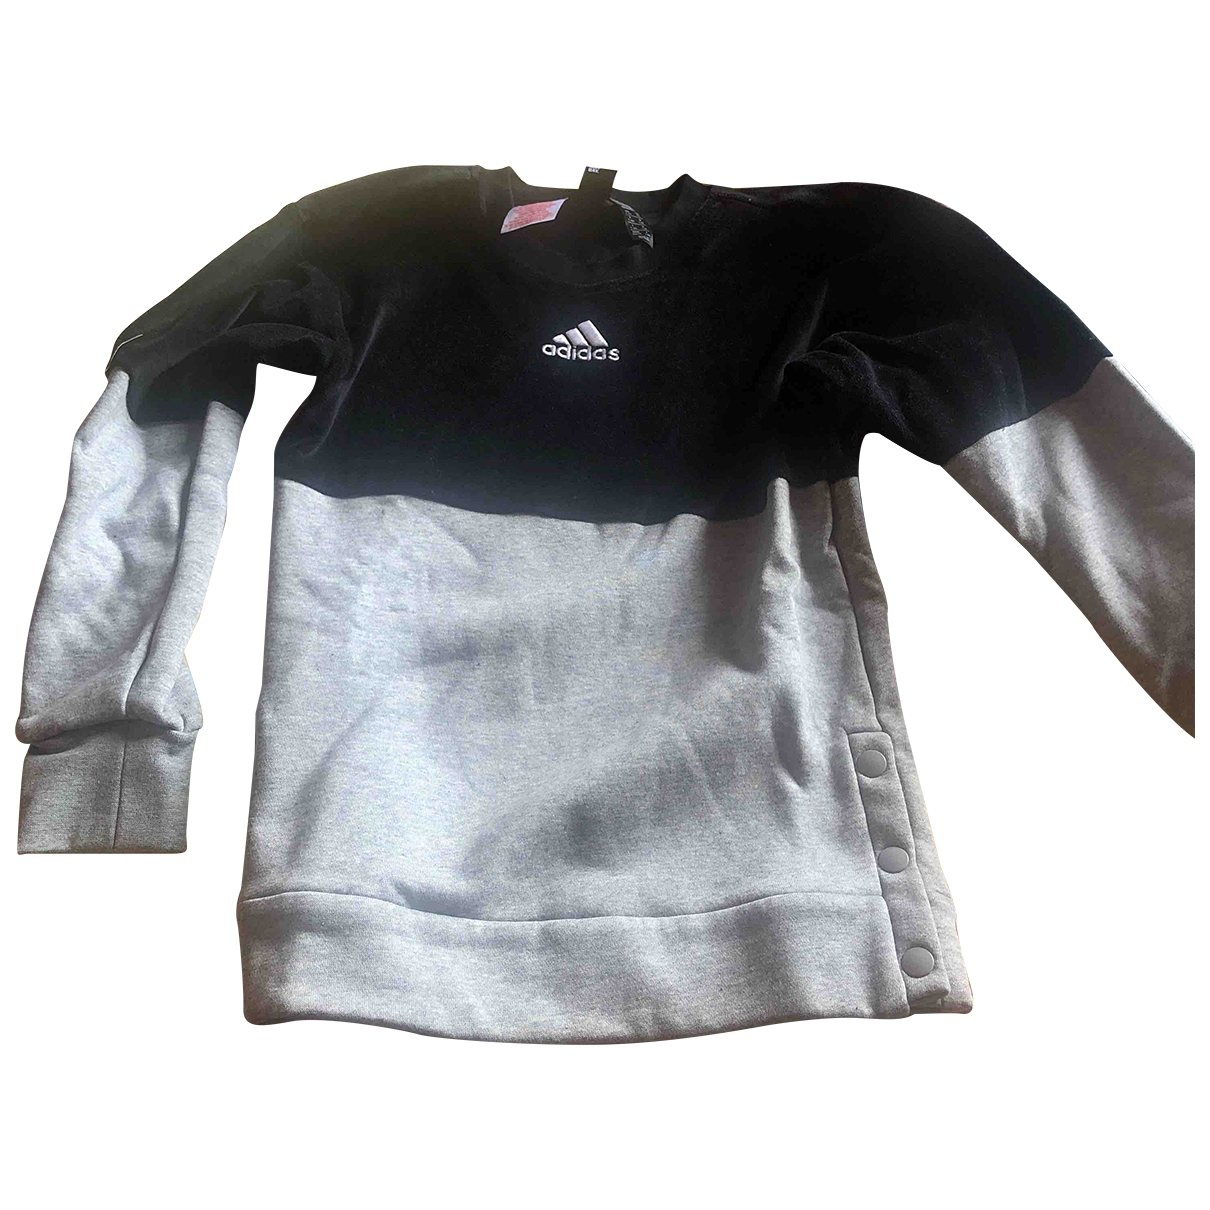 Adidas \N Grey Cotton Knitwear for Kids 8 years - up to 128cm FR